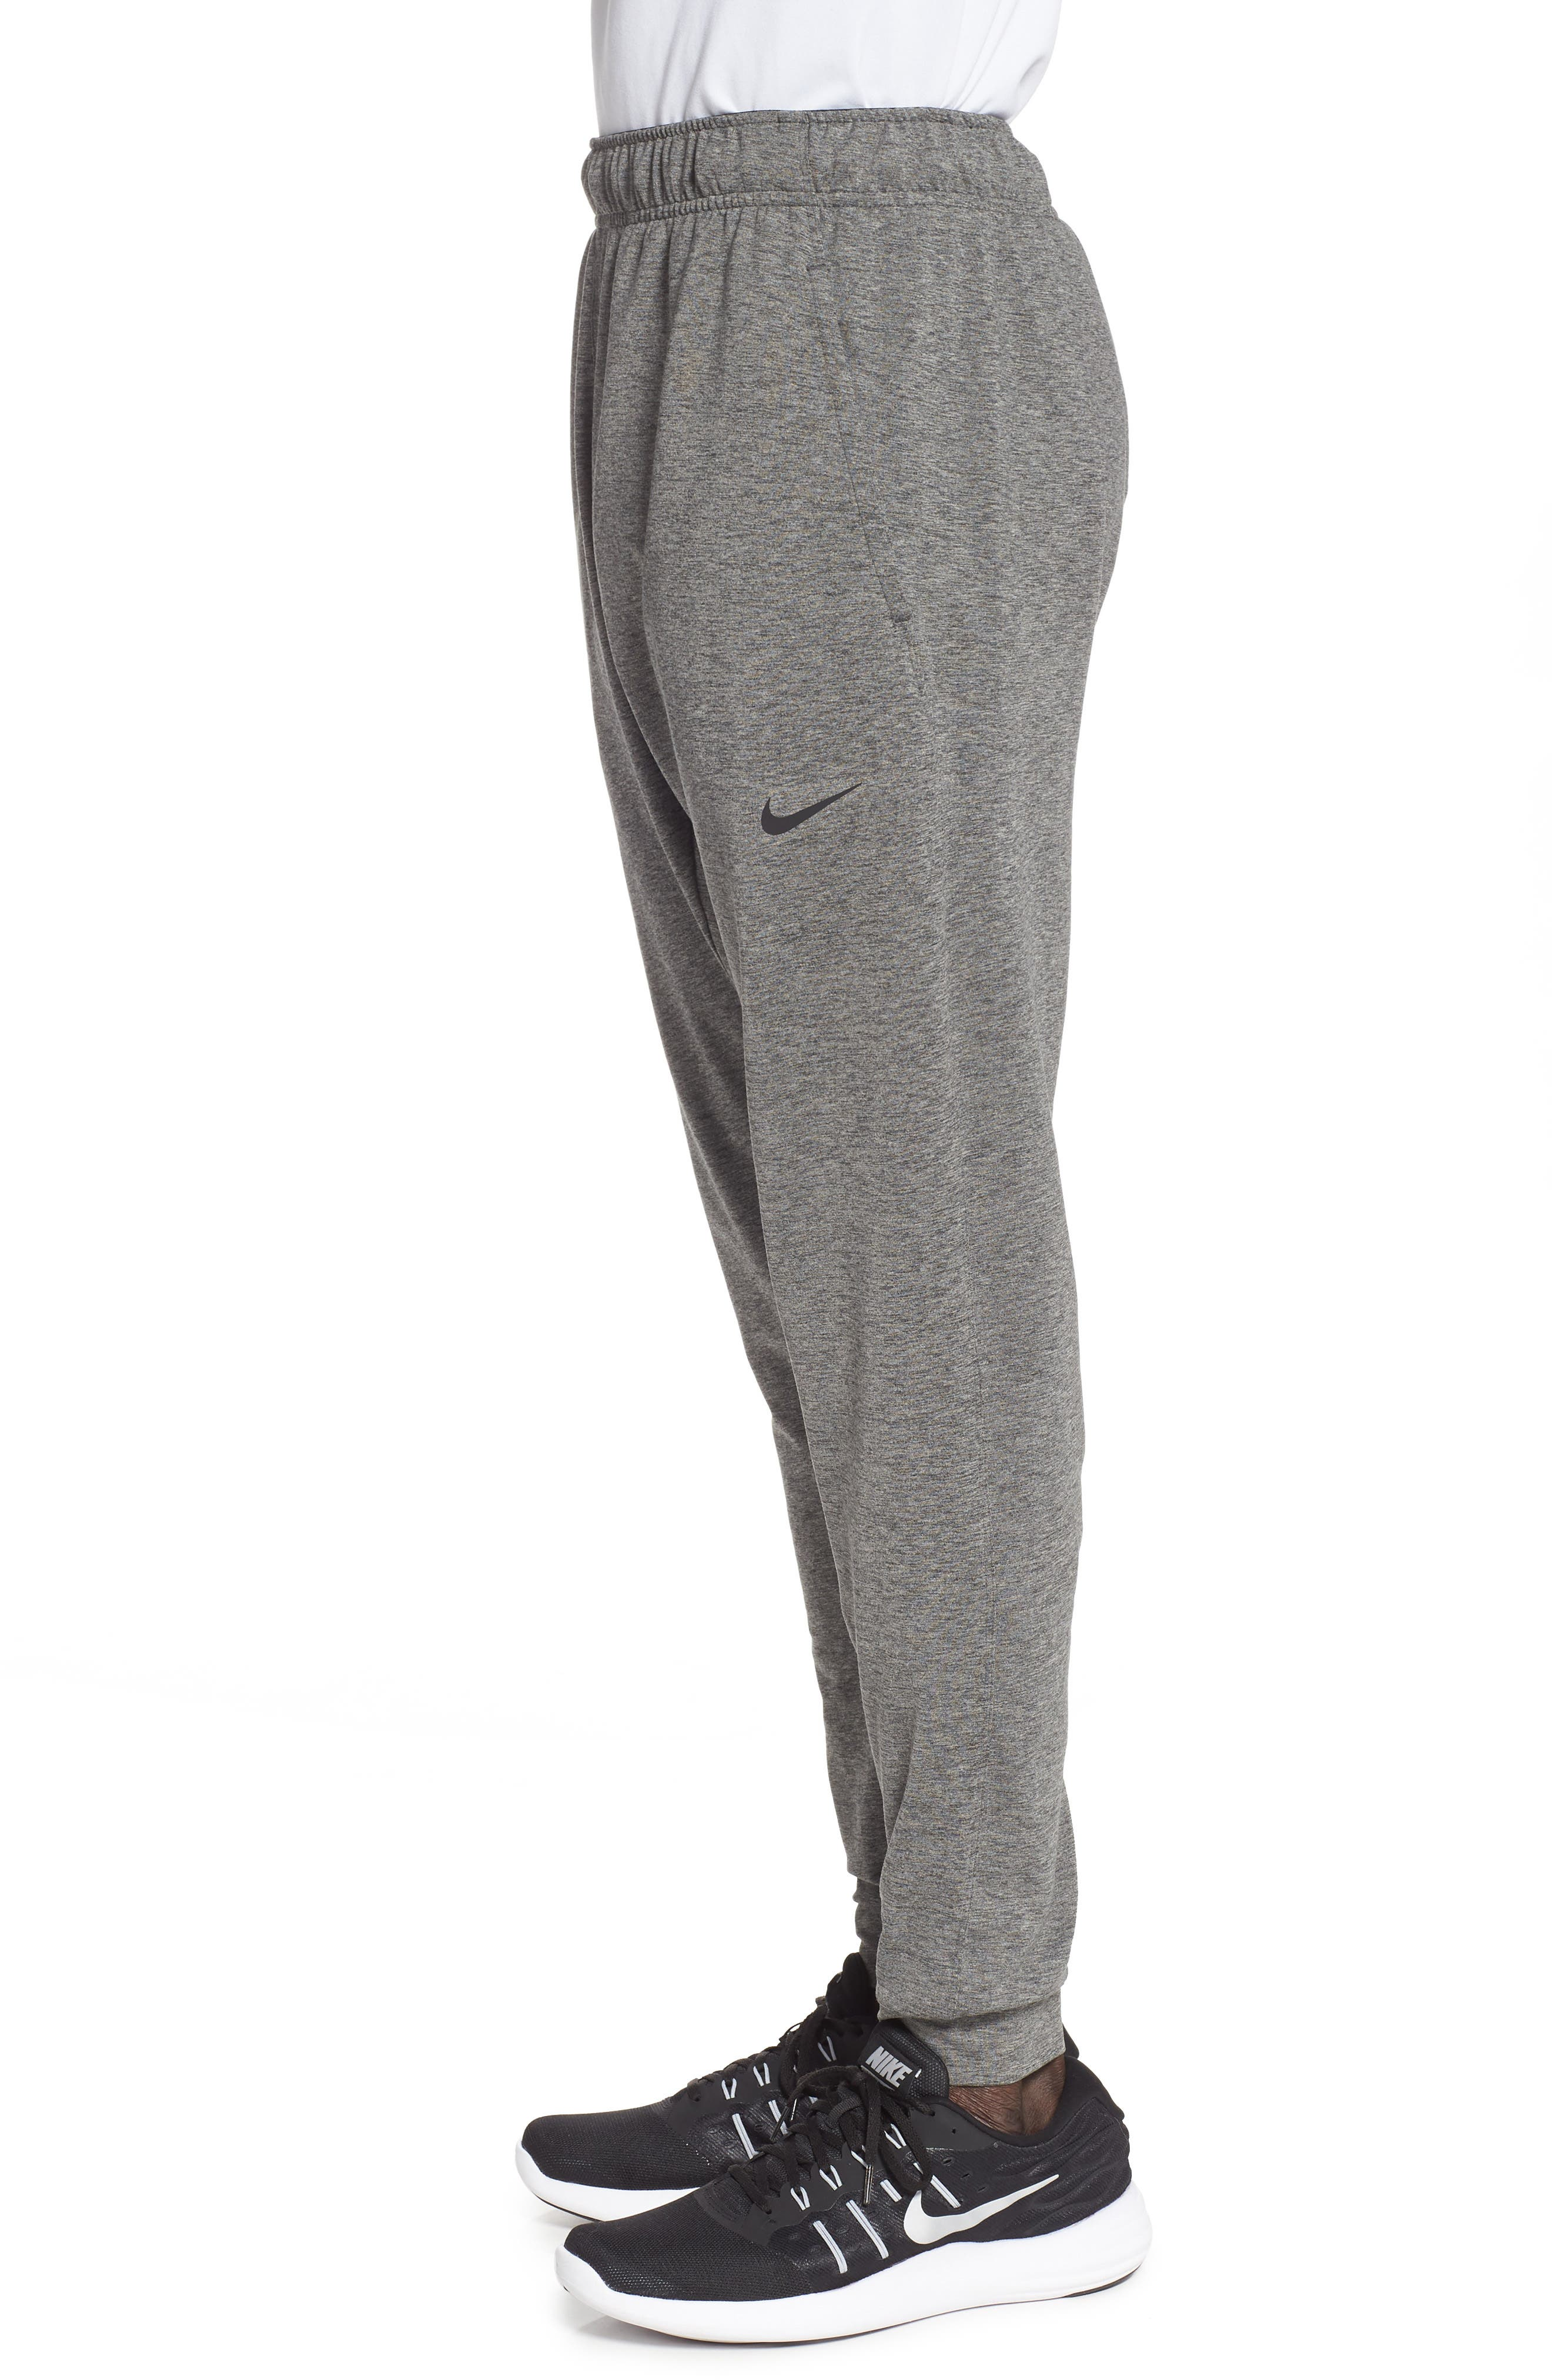 NIKE, Transcend Dry Yoga Training Pants, Alternate thumbnail 4, color, BLACK/ HEATHER/ BLACK